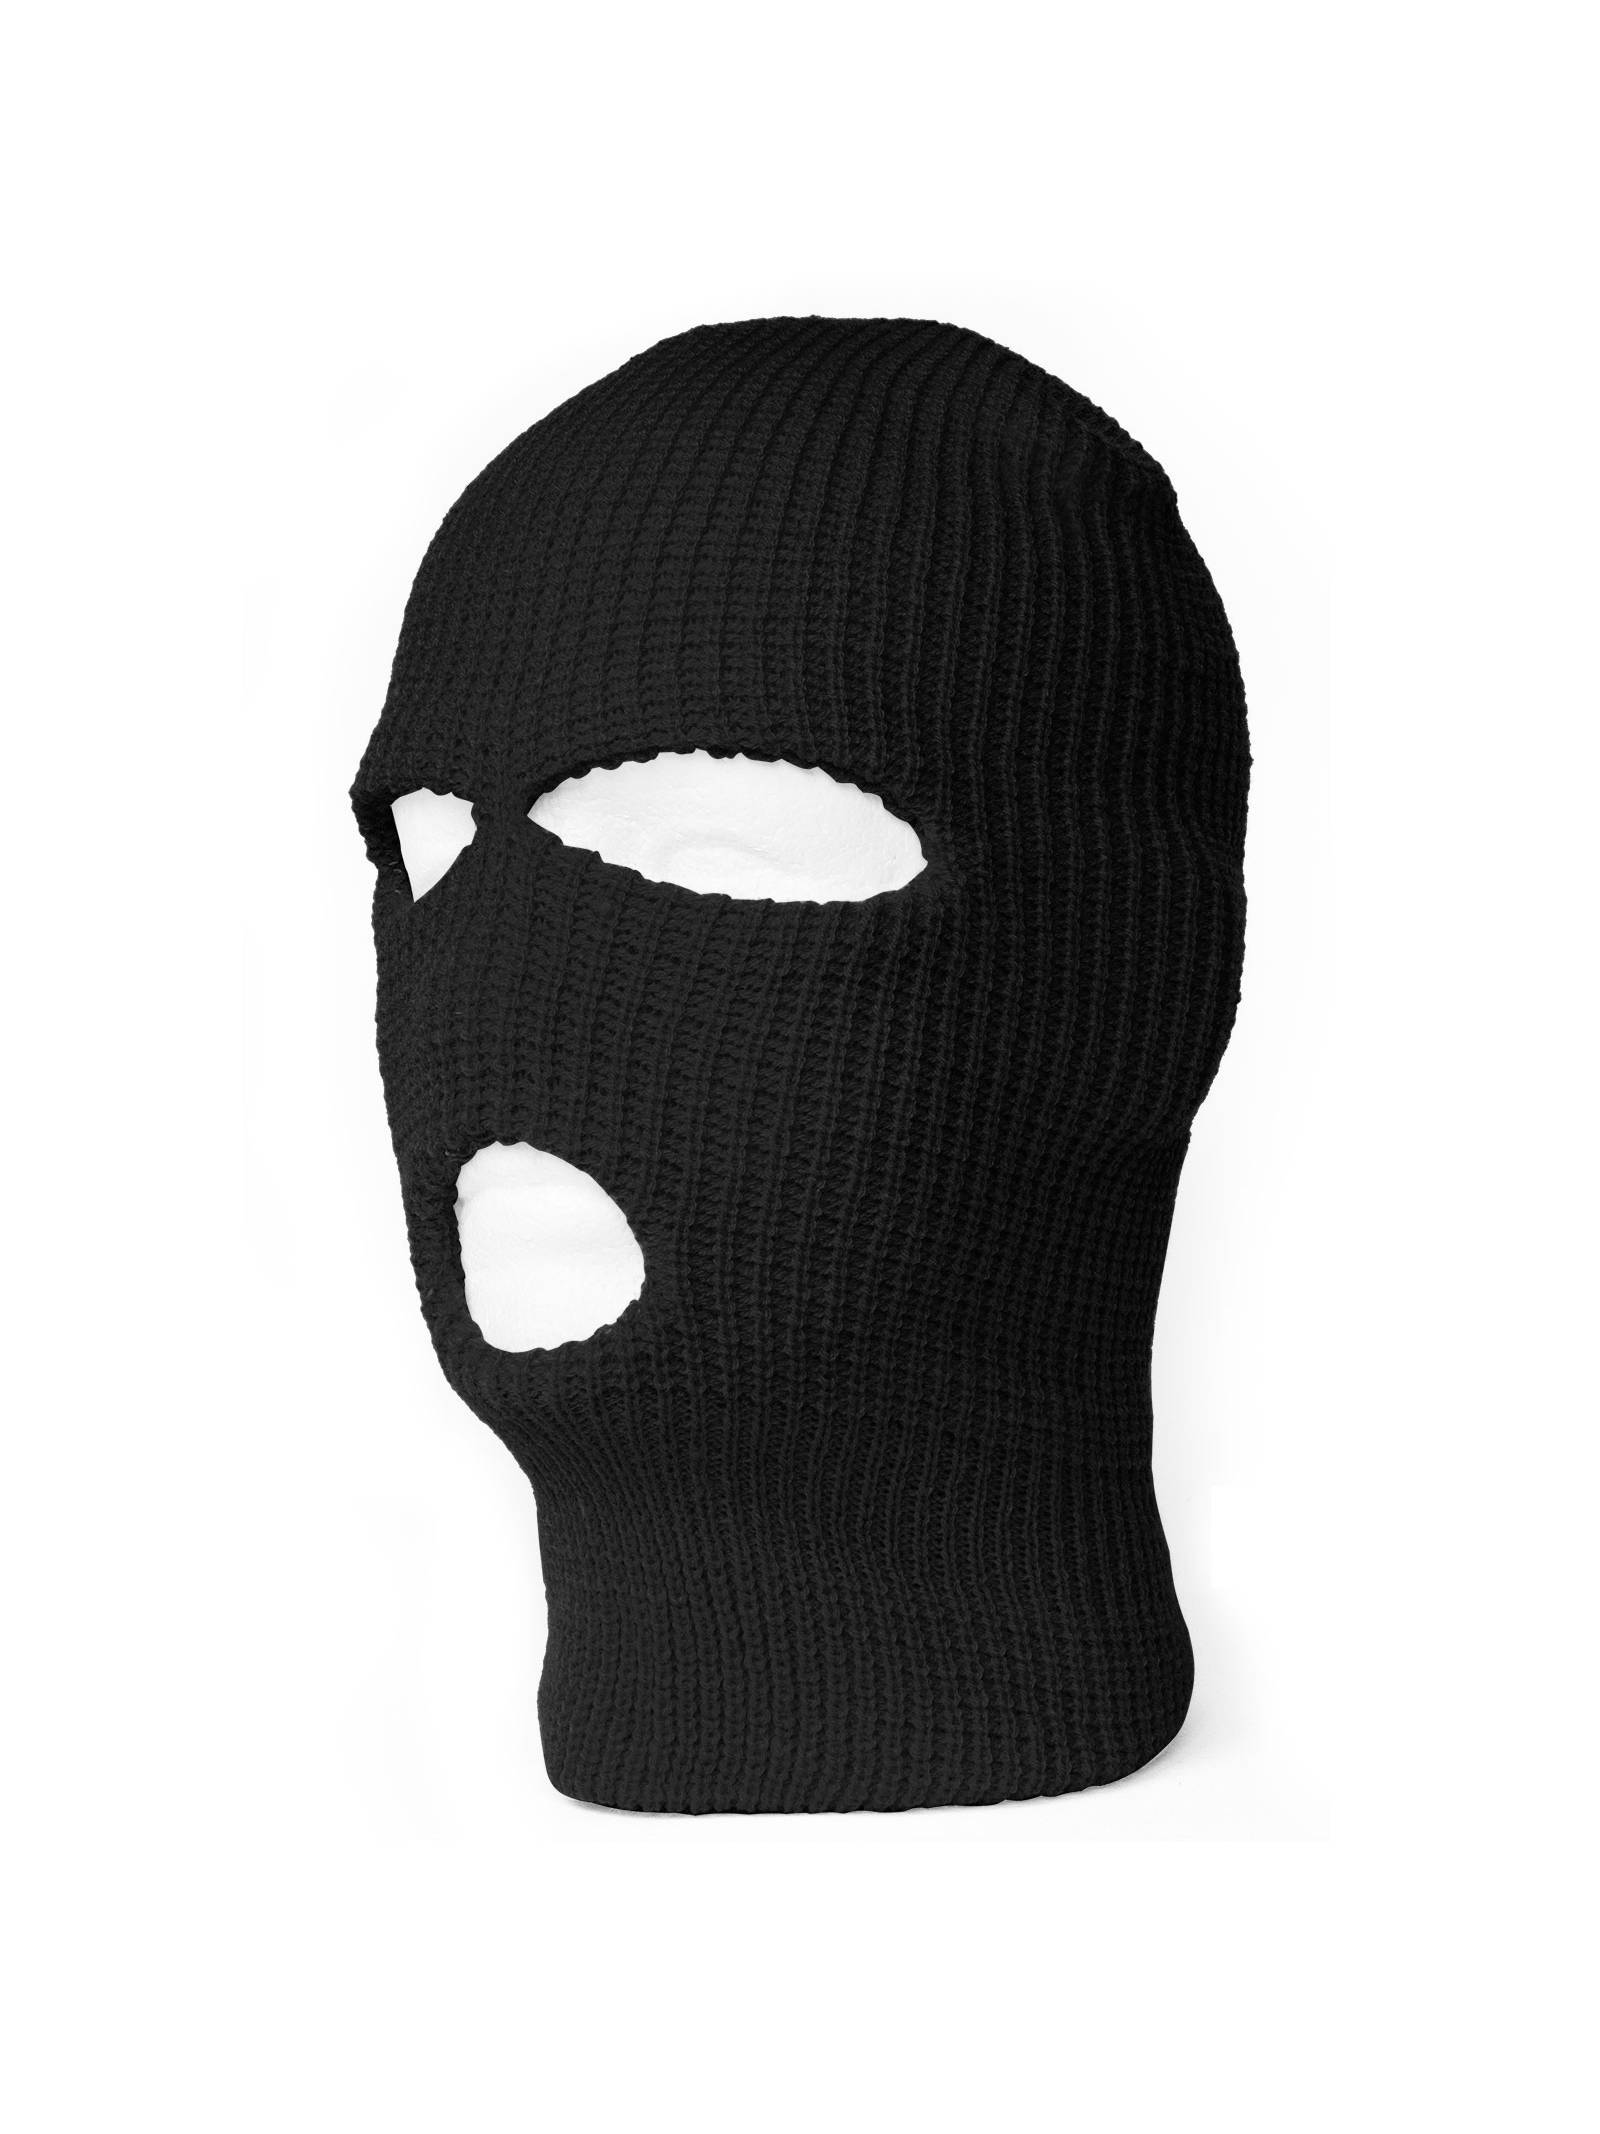 3 Hole Winter Ski Mask Balaclava - Black  cbb4375fb